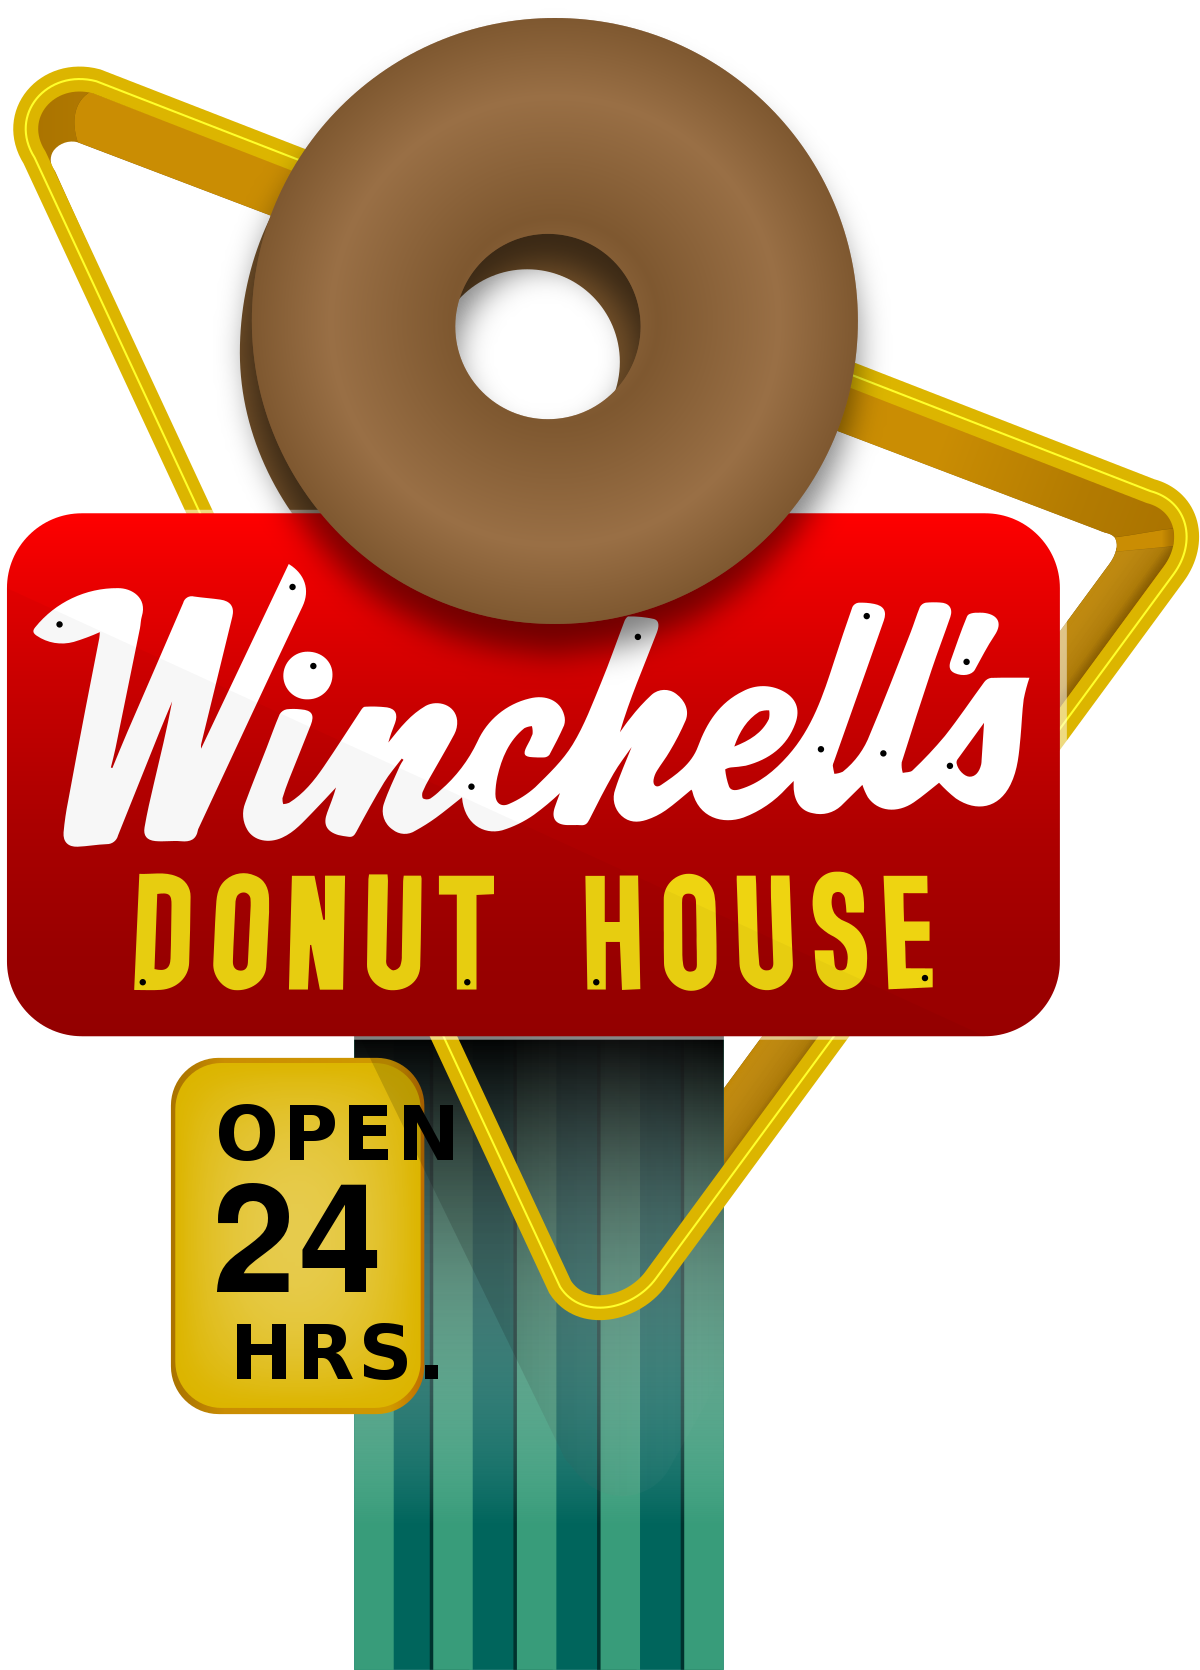 Joho-s bean interactive form image clipart clipart royalty free stock Winchell\'s Donuts - Wikipedia clipart royalty free stock